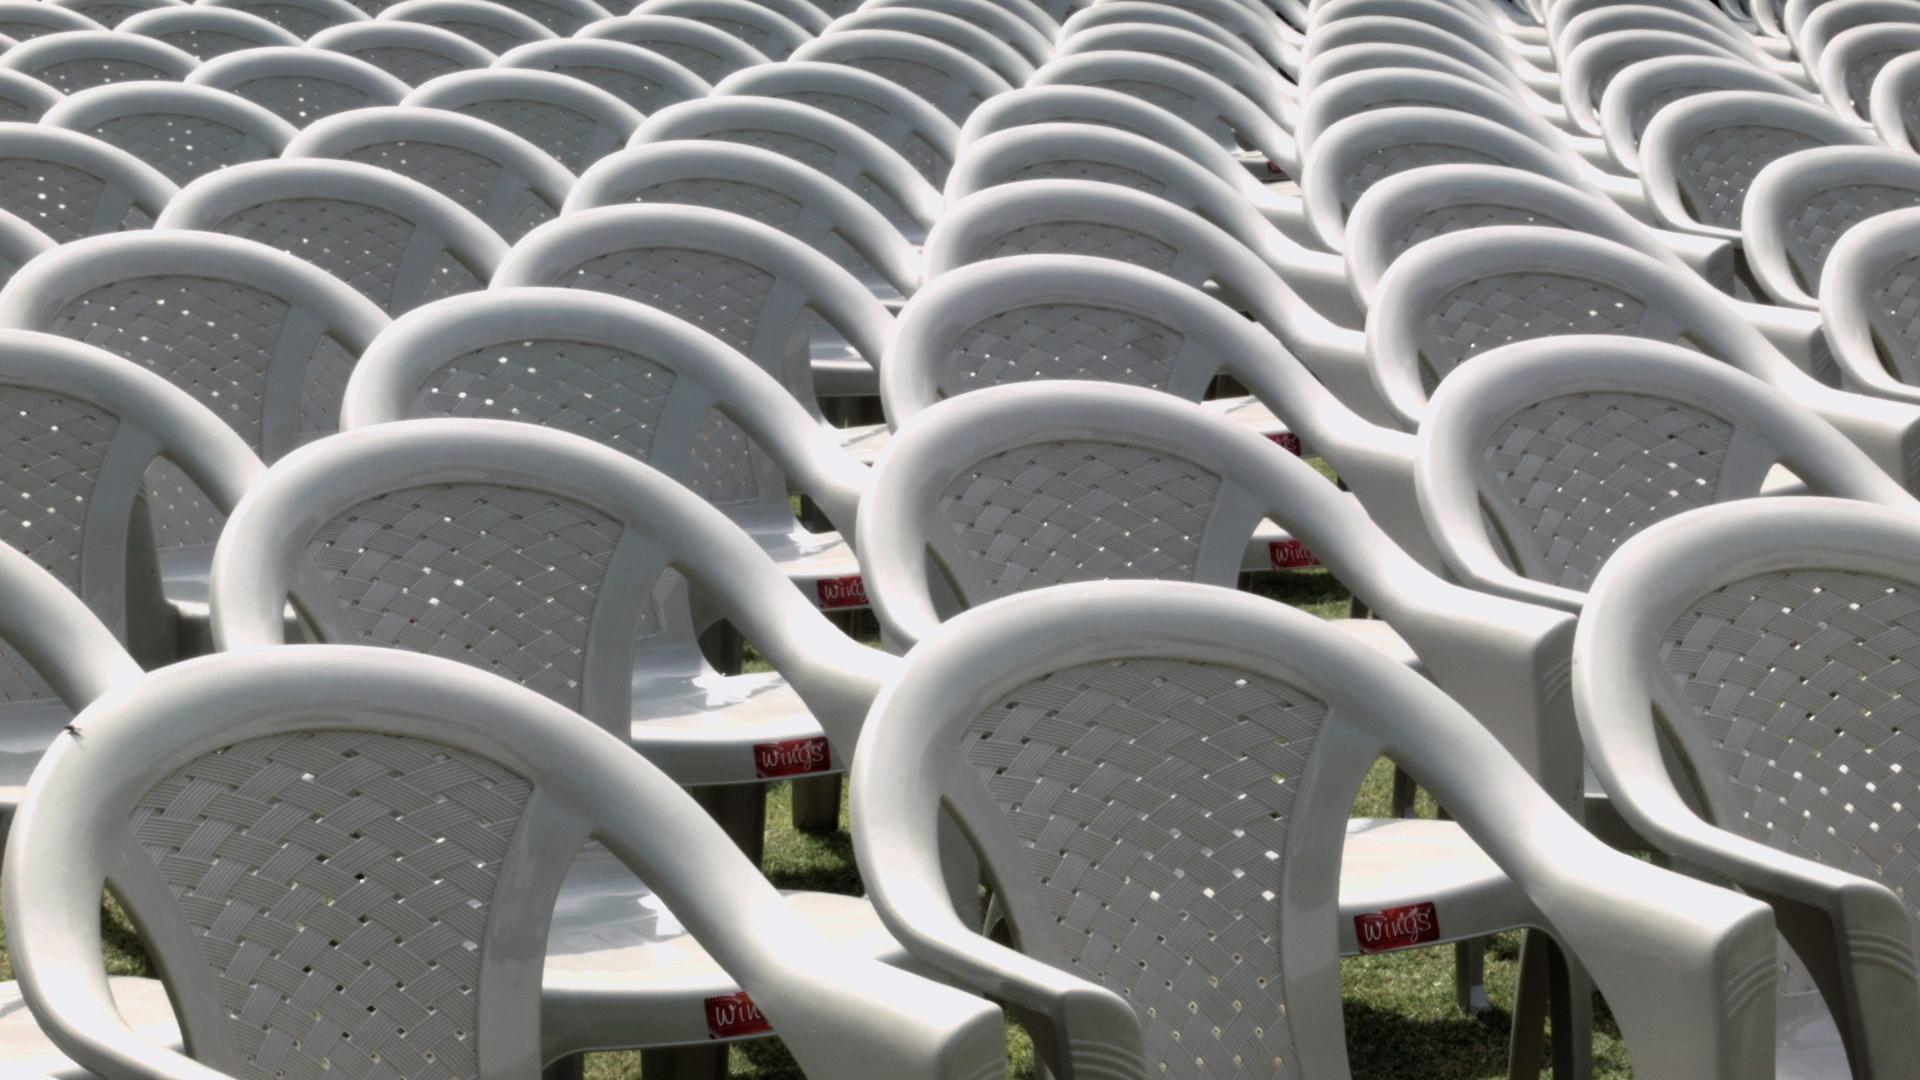 Plastic lawn chairs lined up fill the frame